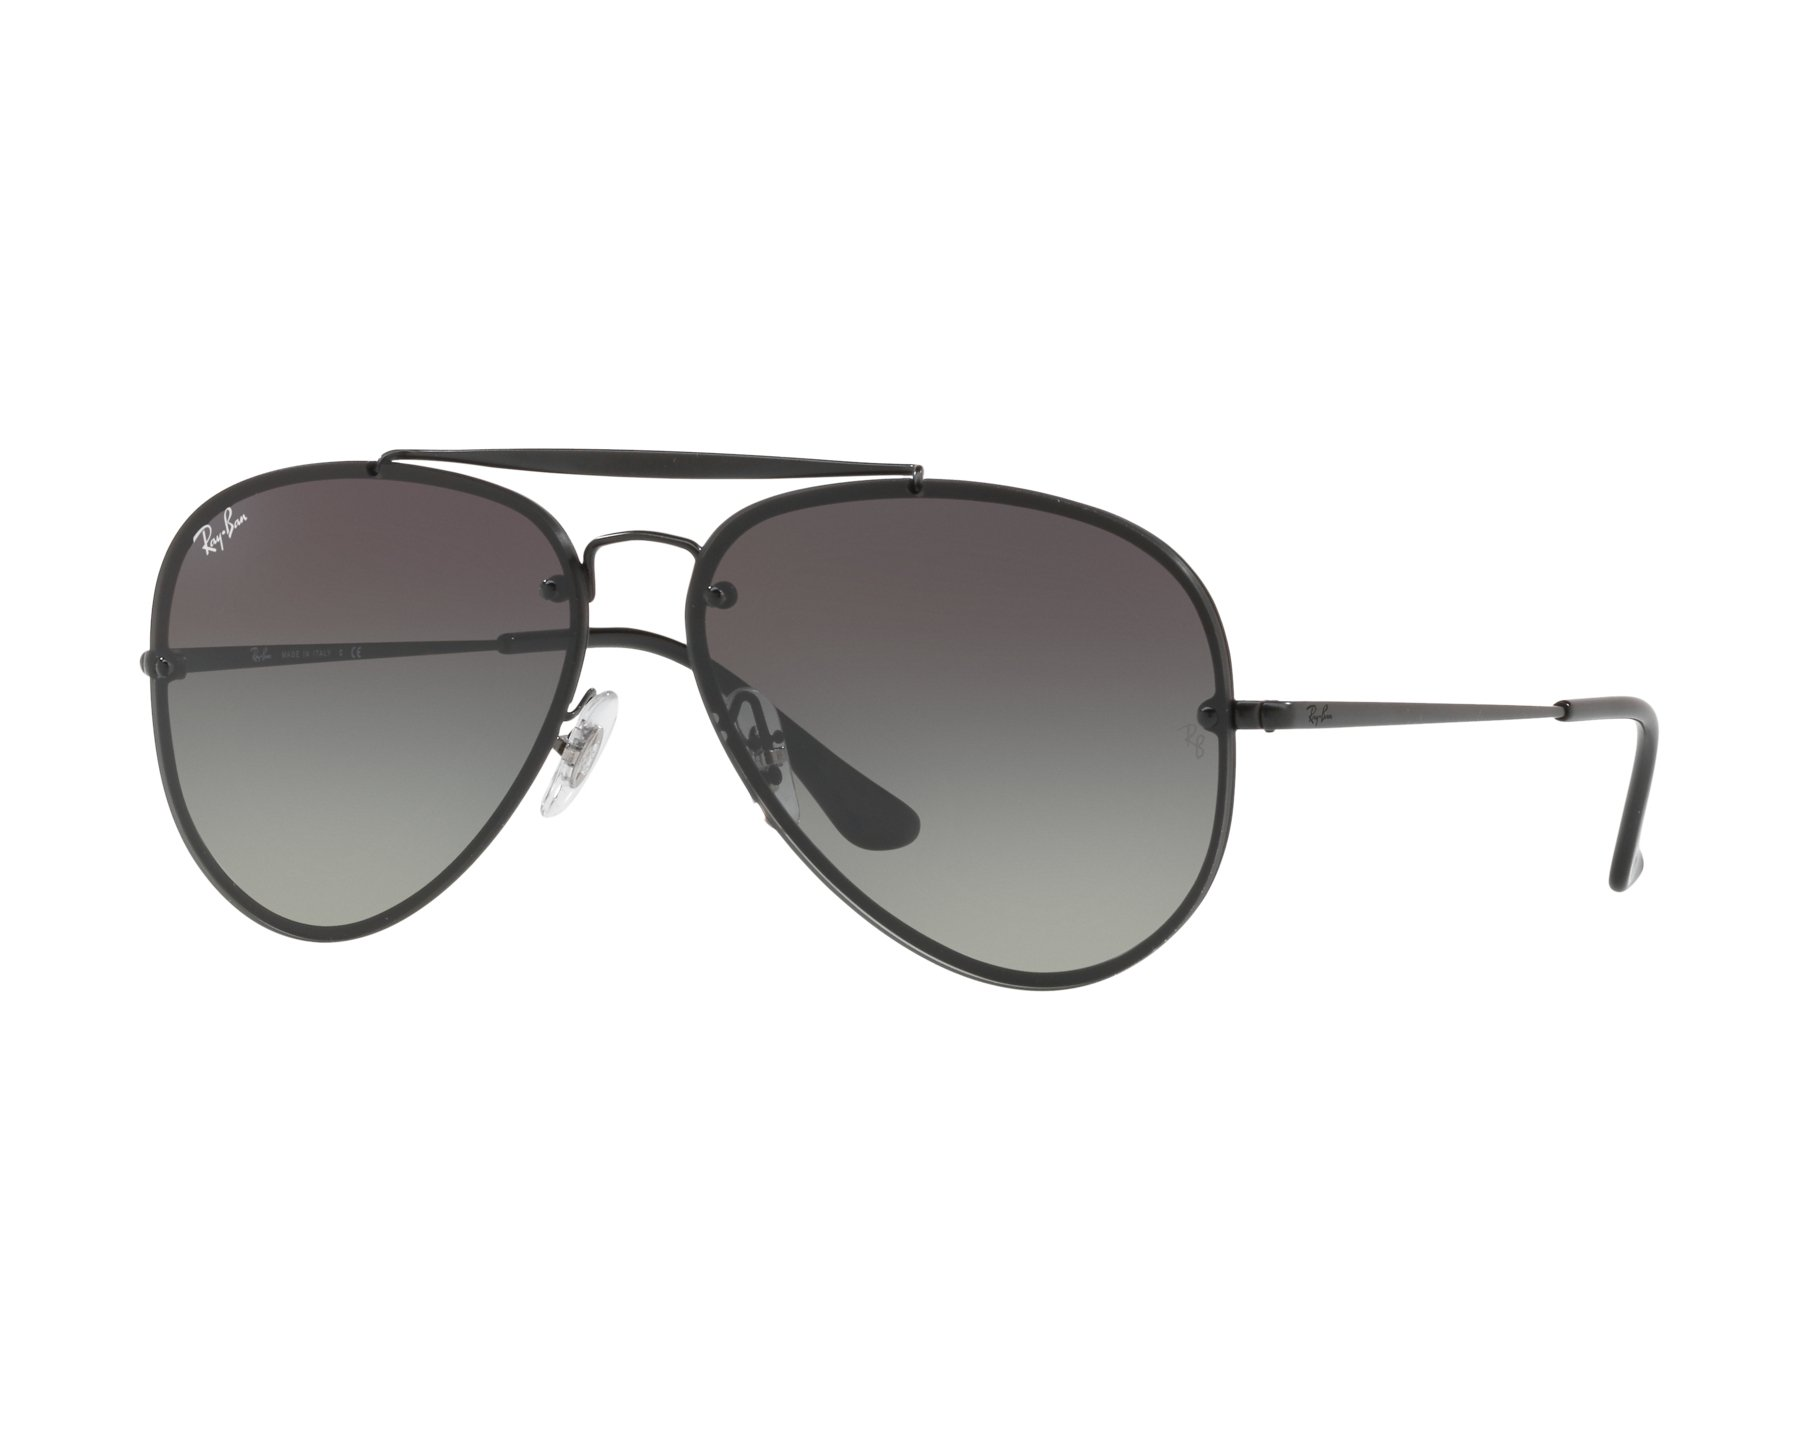 Ray-Ban RB3584N 153/11 61 mm/13 mm OhGzOTGO